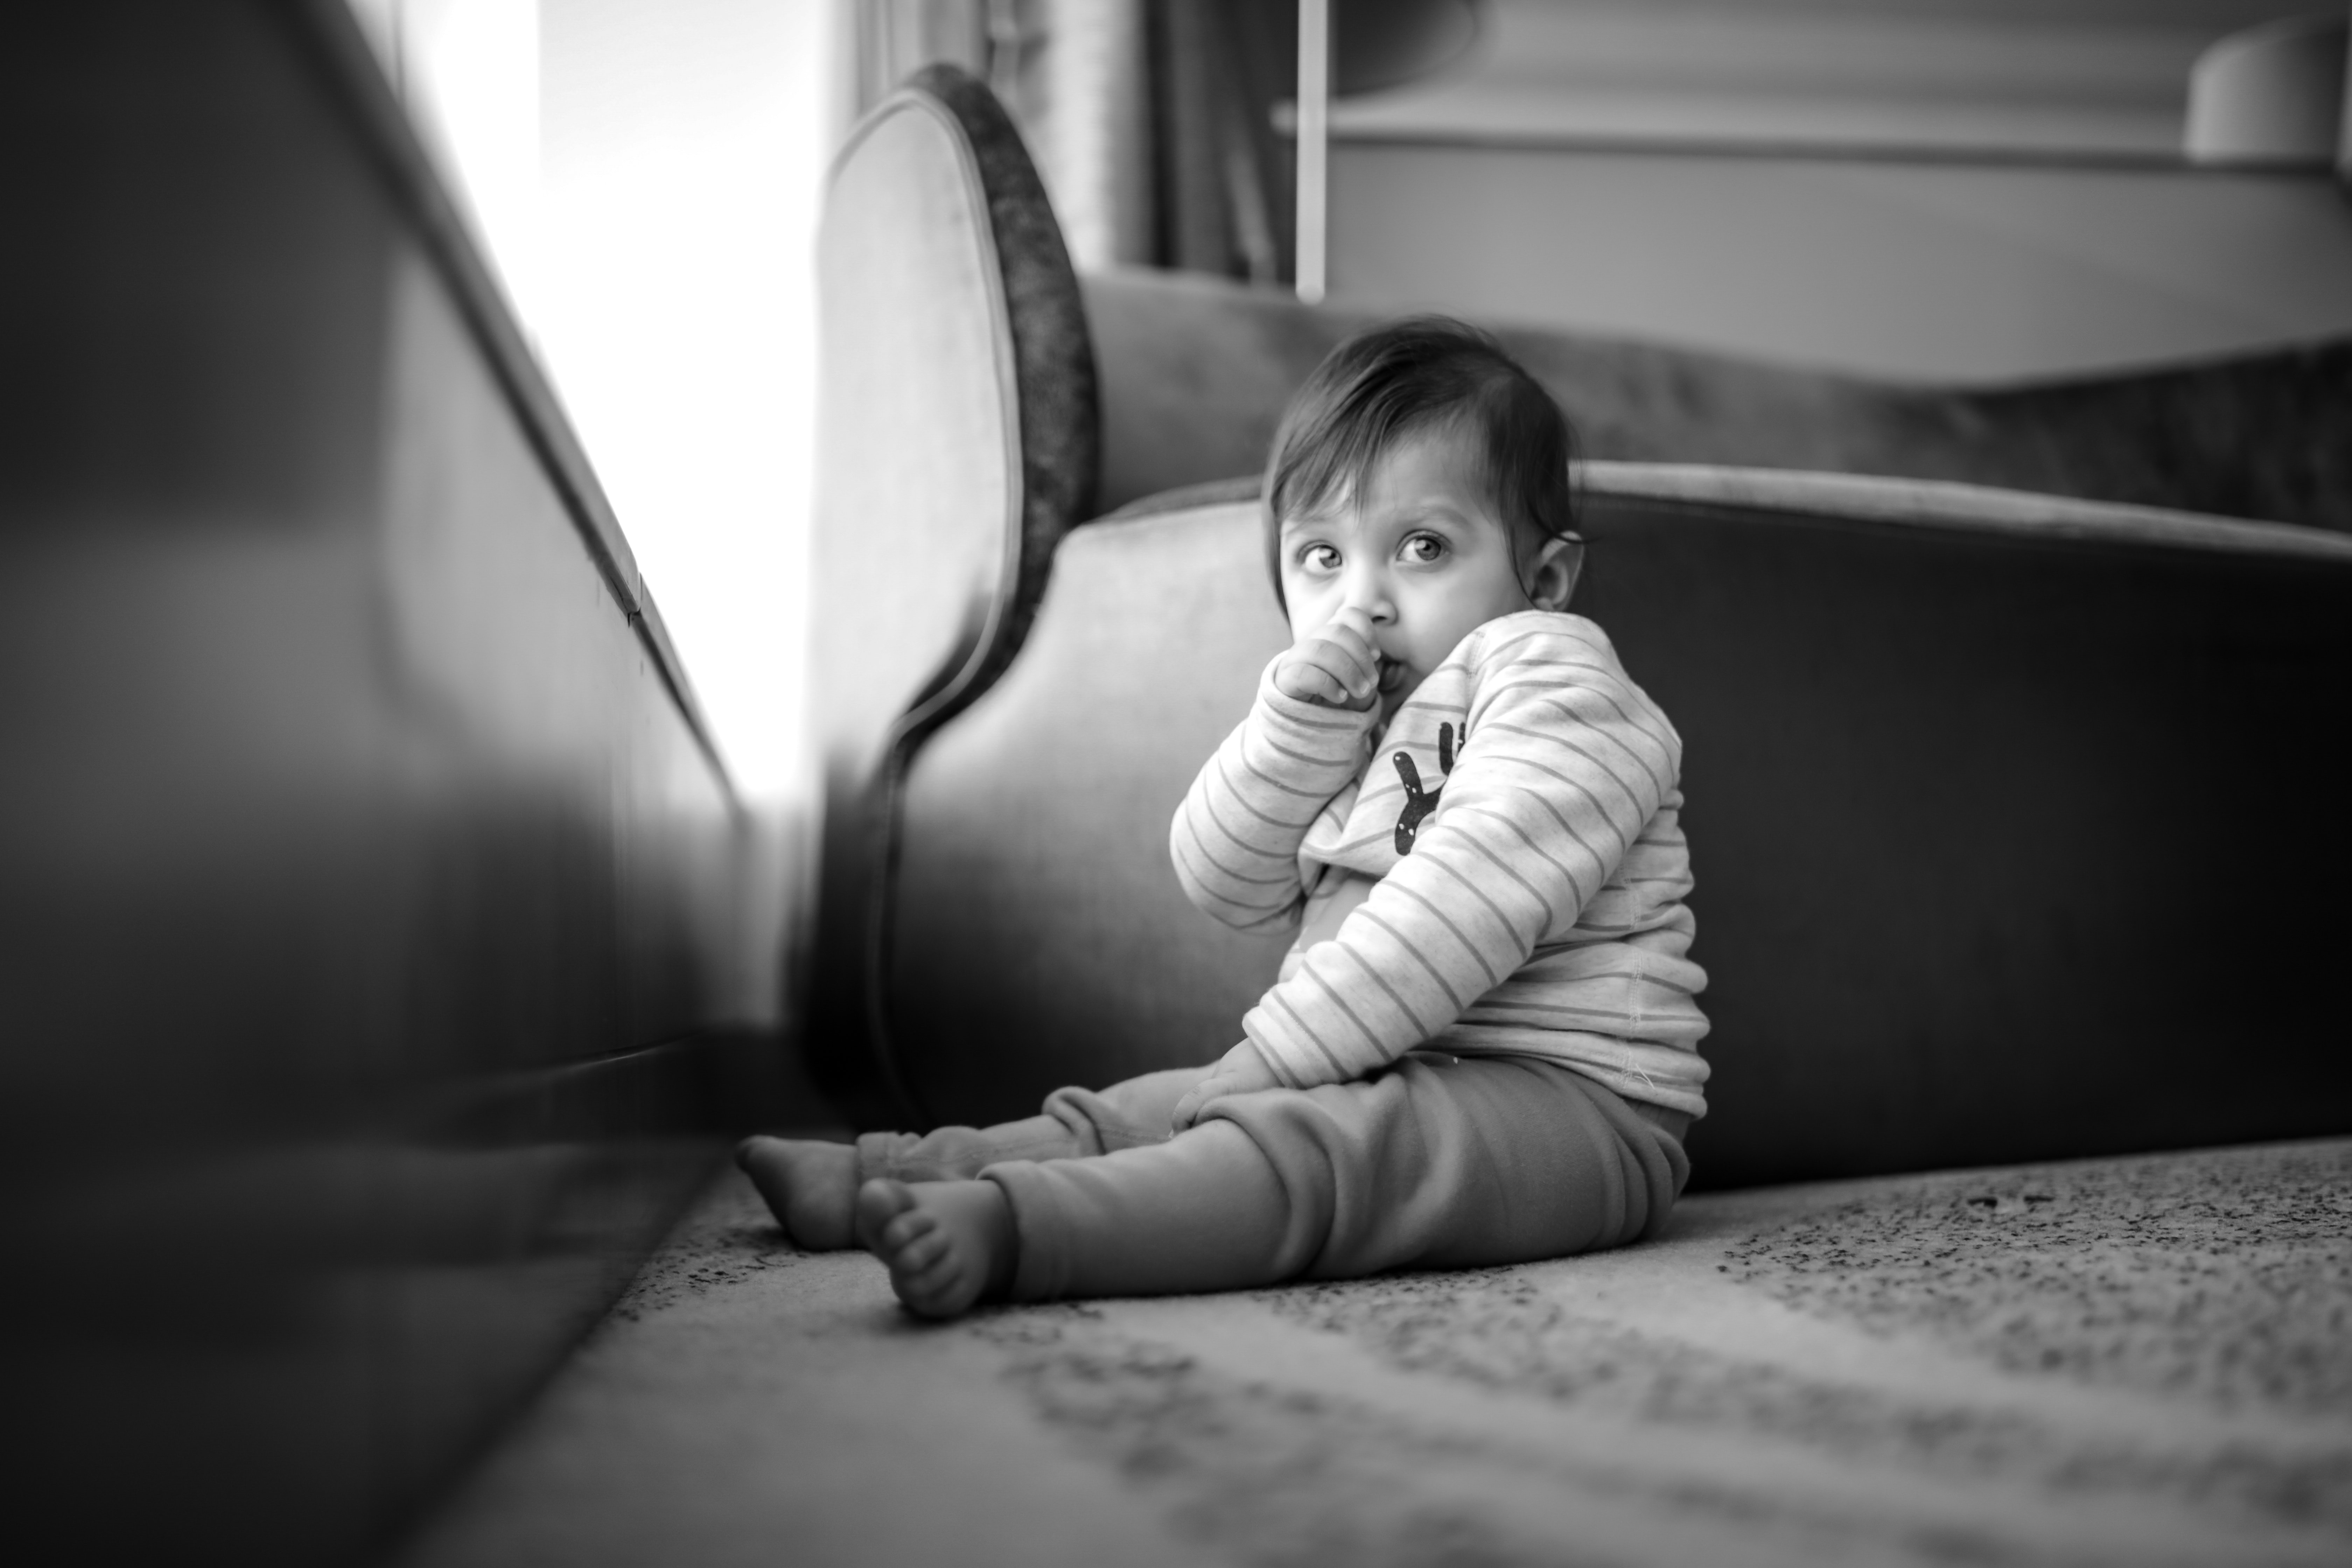 Toddler Right Hand In Mouth, Adorable, Baby, Black and white, Black-and-white, HQ Photo